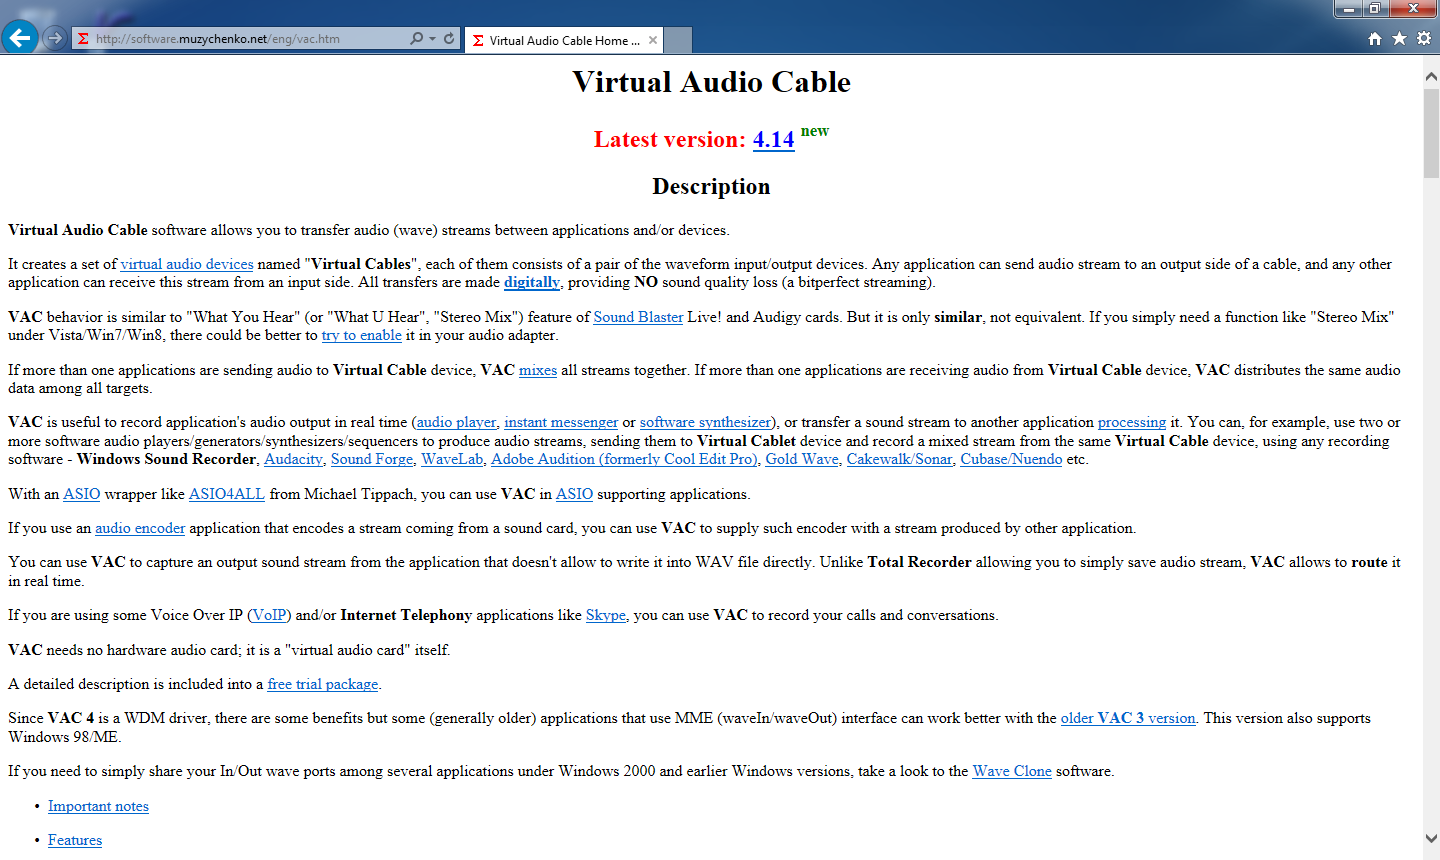 p25_trunk_tracking-02_virtual_audio_cable-01_vac_website